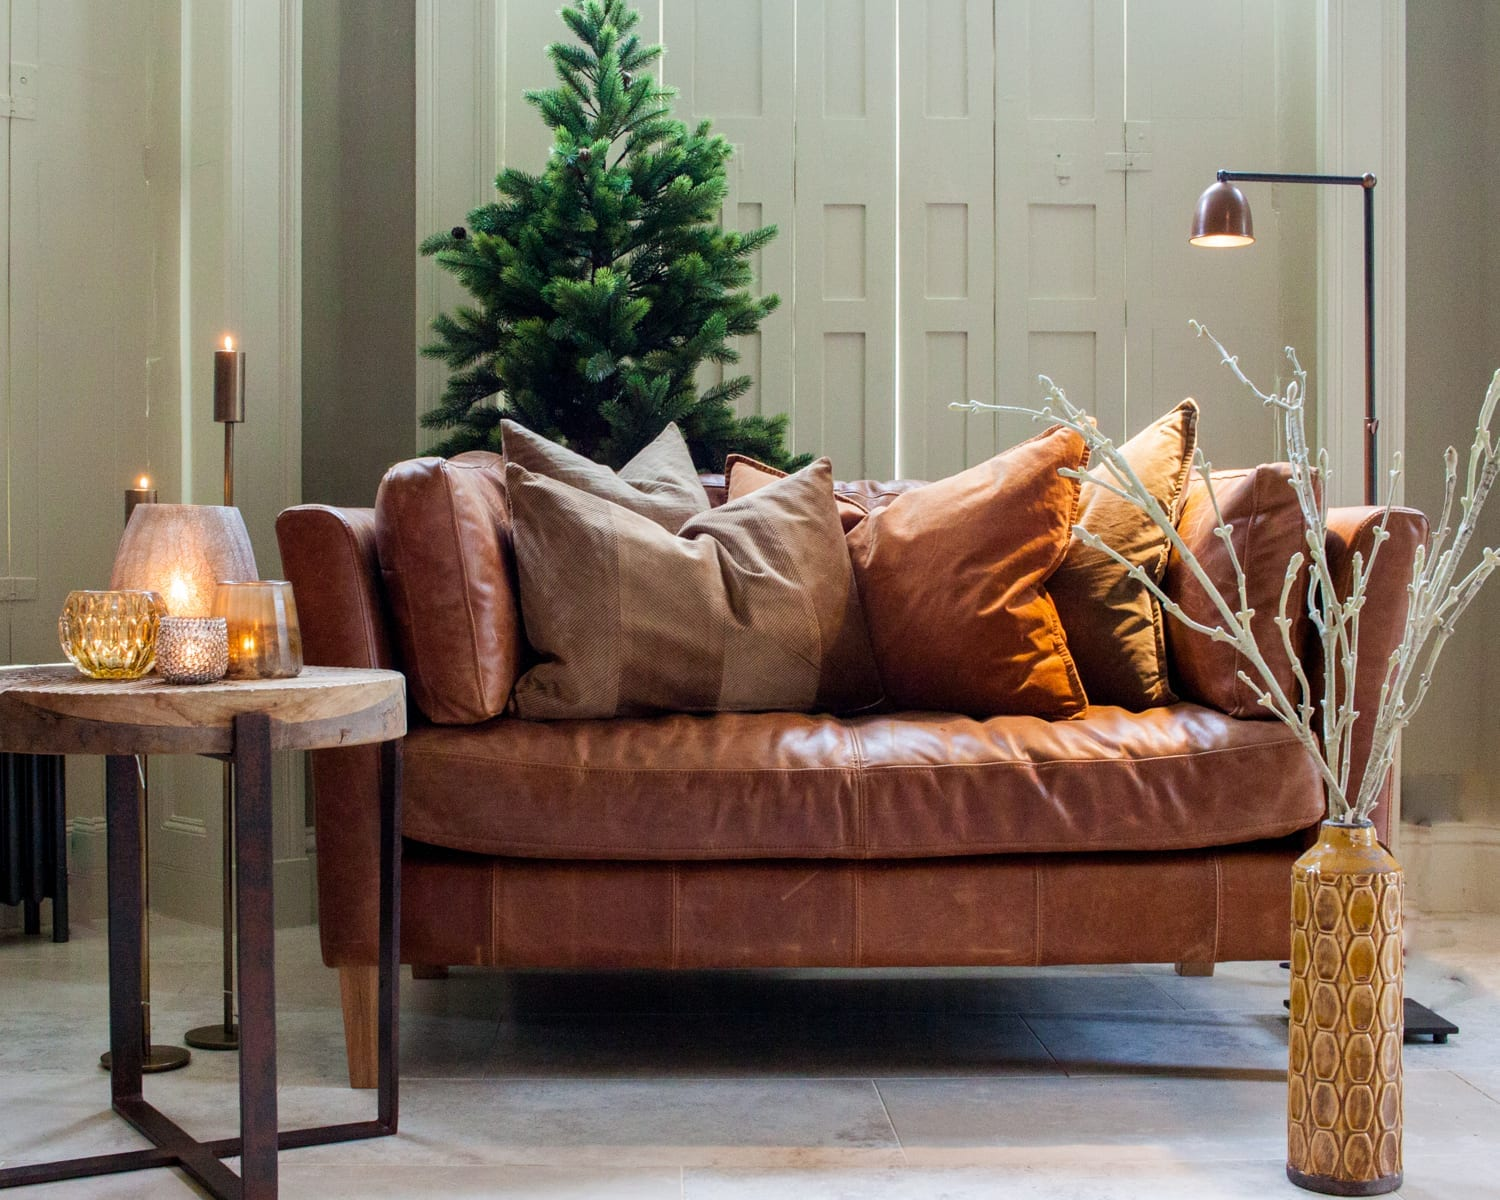 Christmas-croft-two-seater-leather-sofa